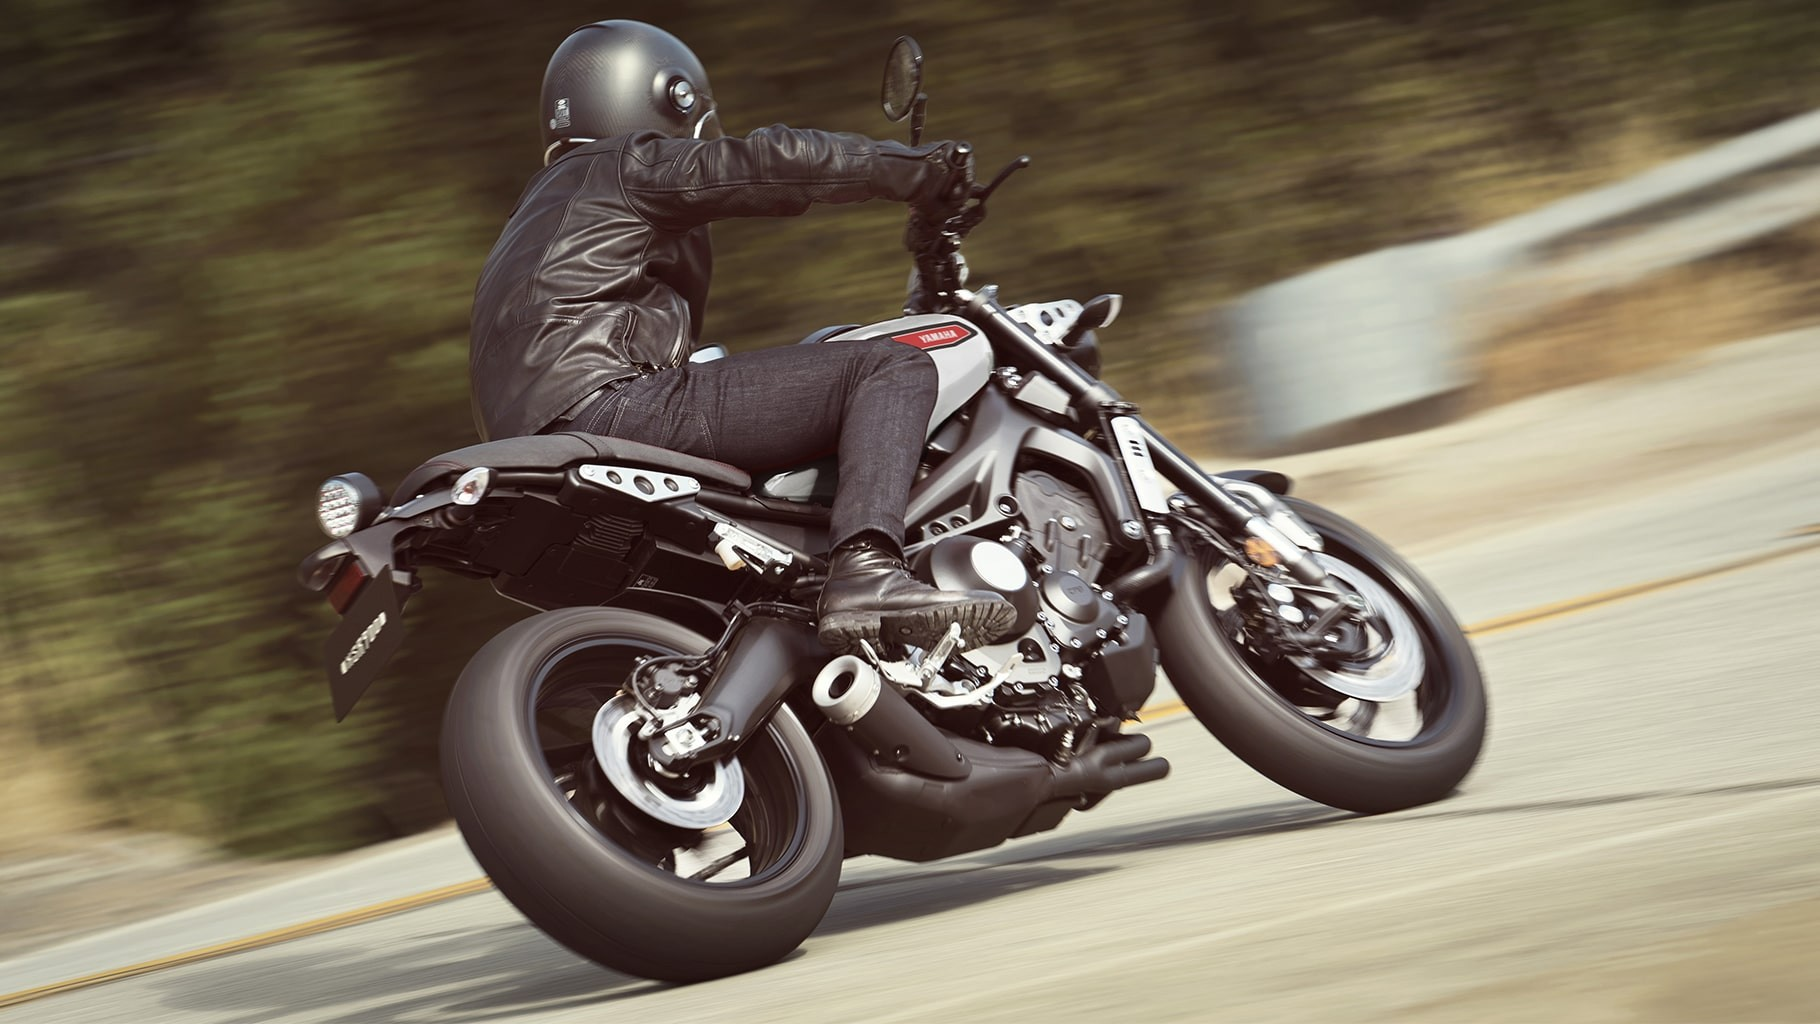 xsr900-matte-gray-aluminum-red-action-05_8V5a